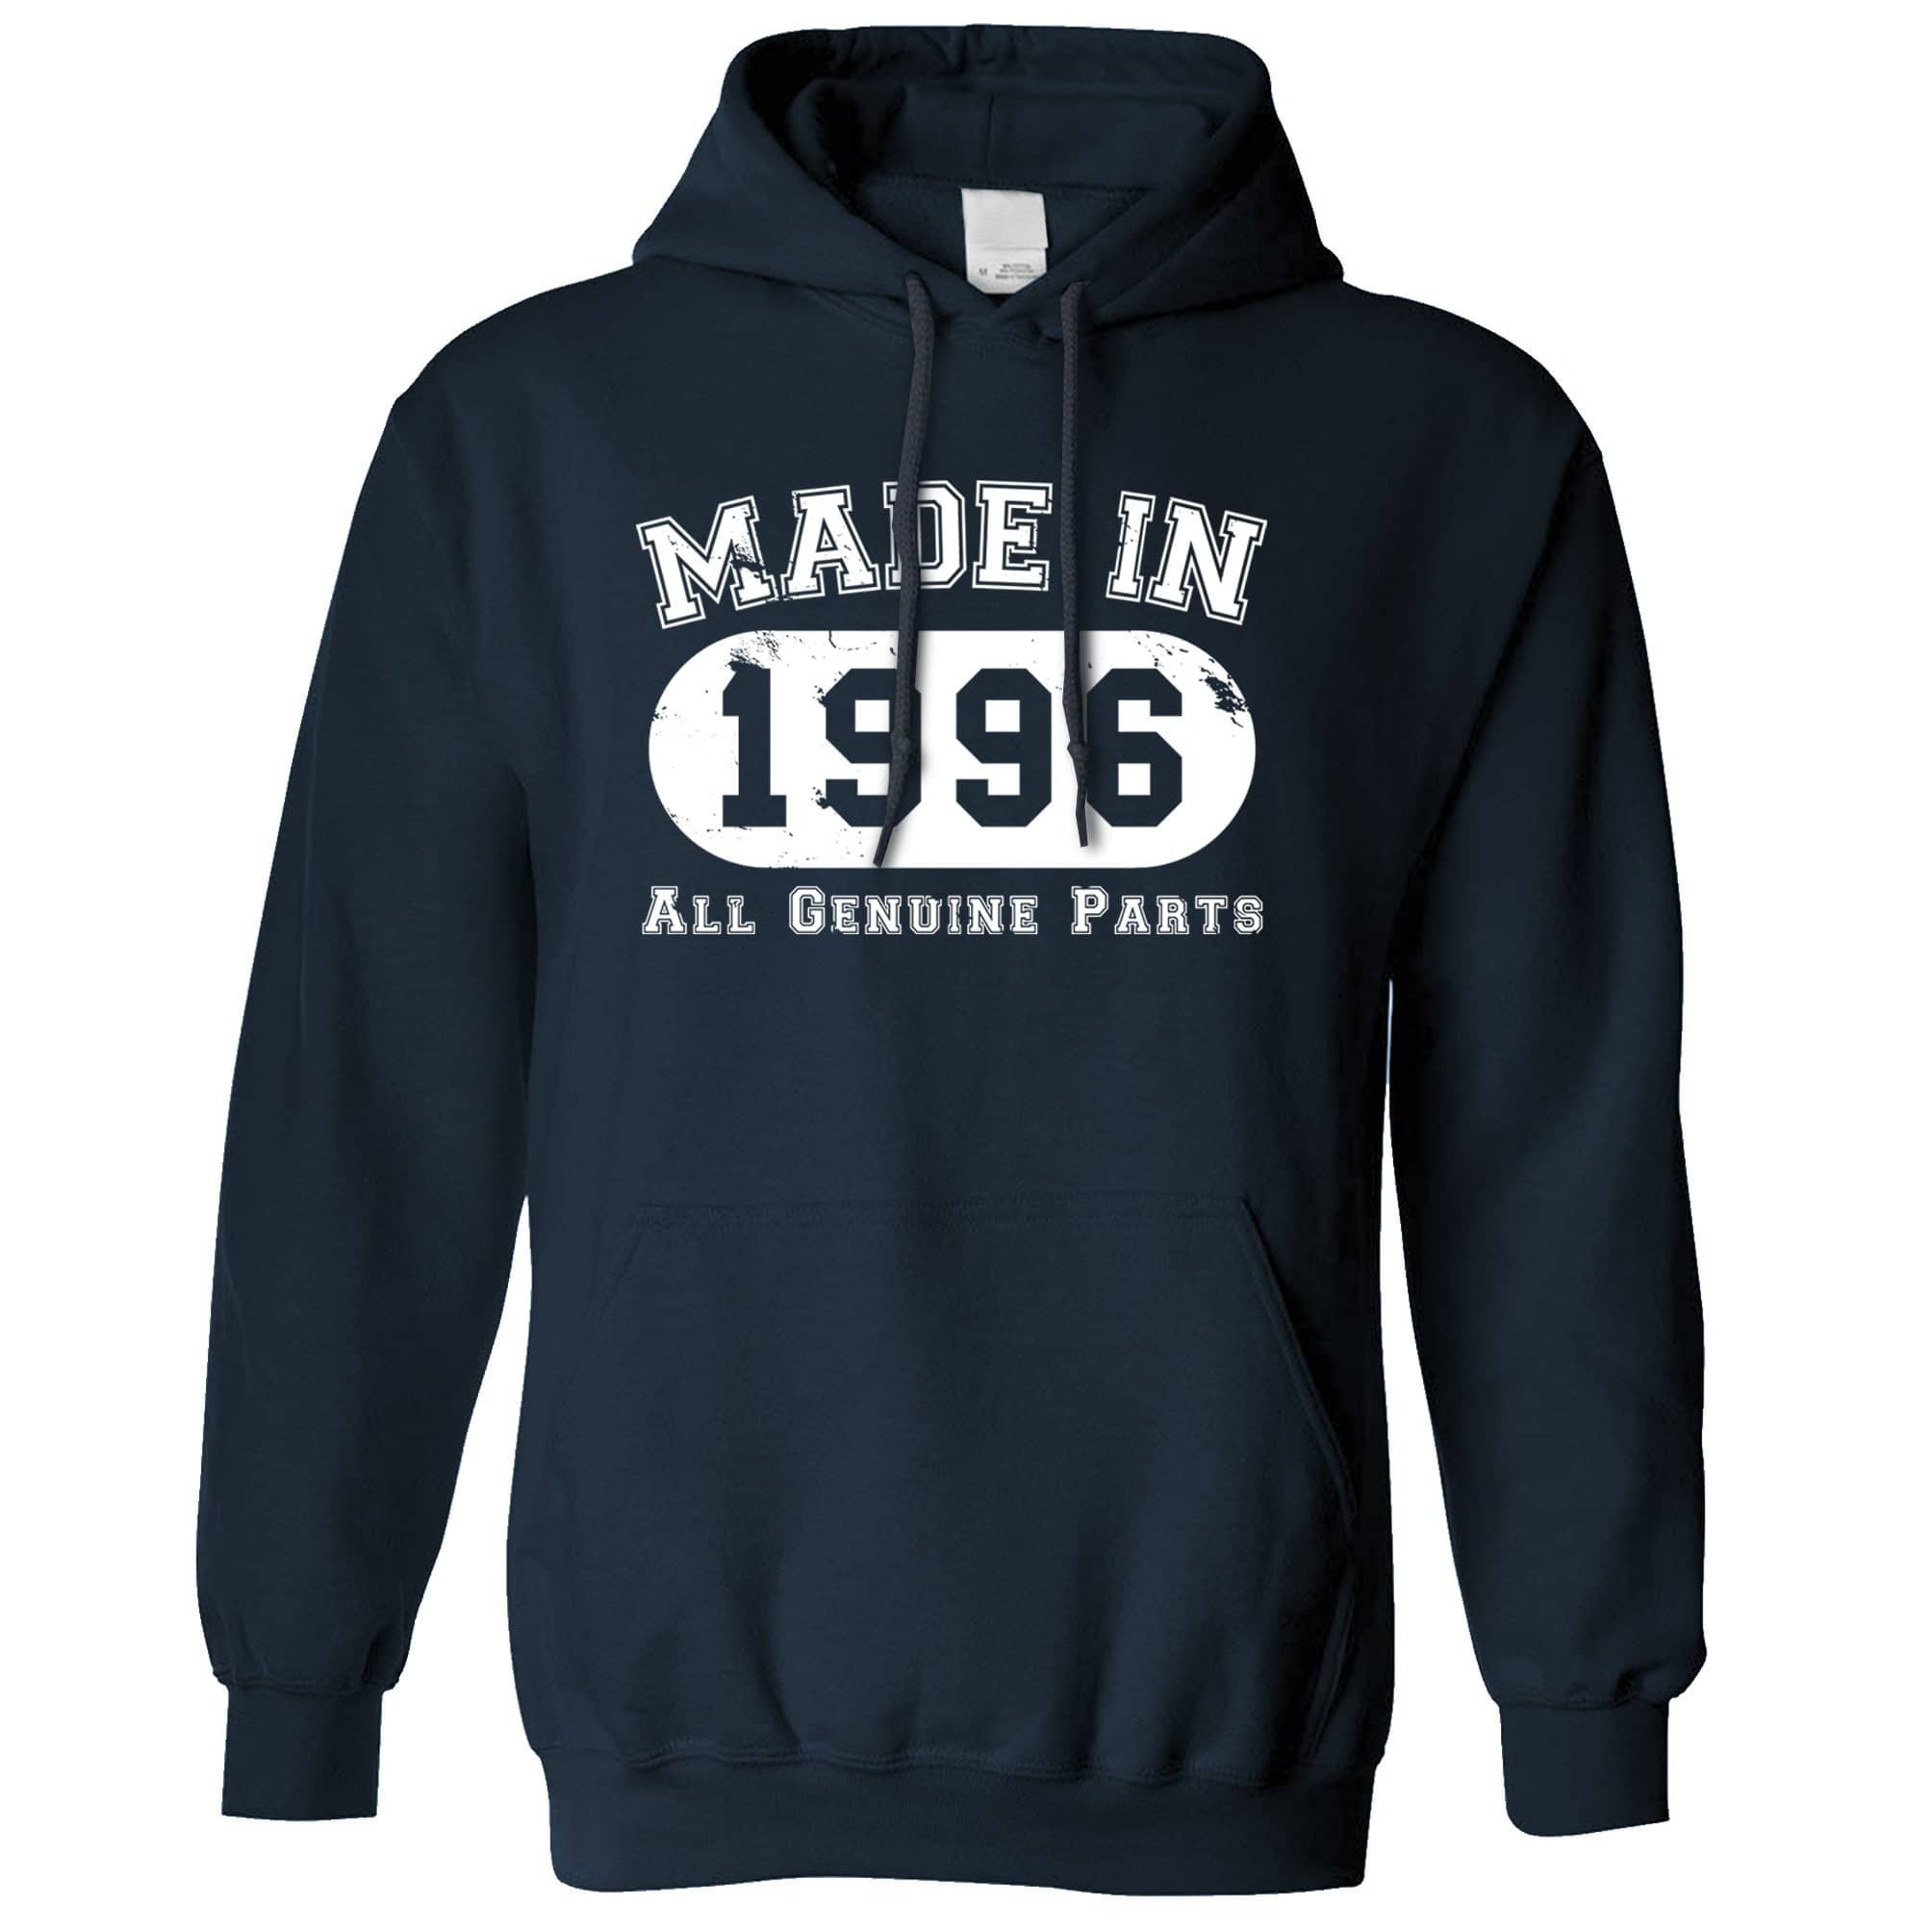 Birthday Hoodie Made in 1996 All Genuine Parts Hooded Jumper